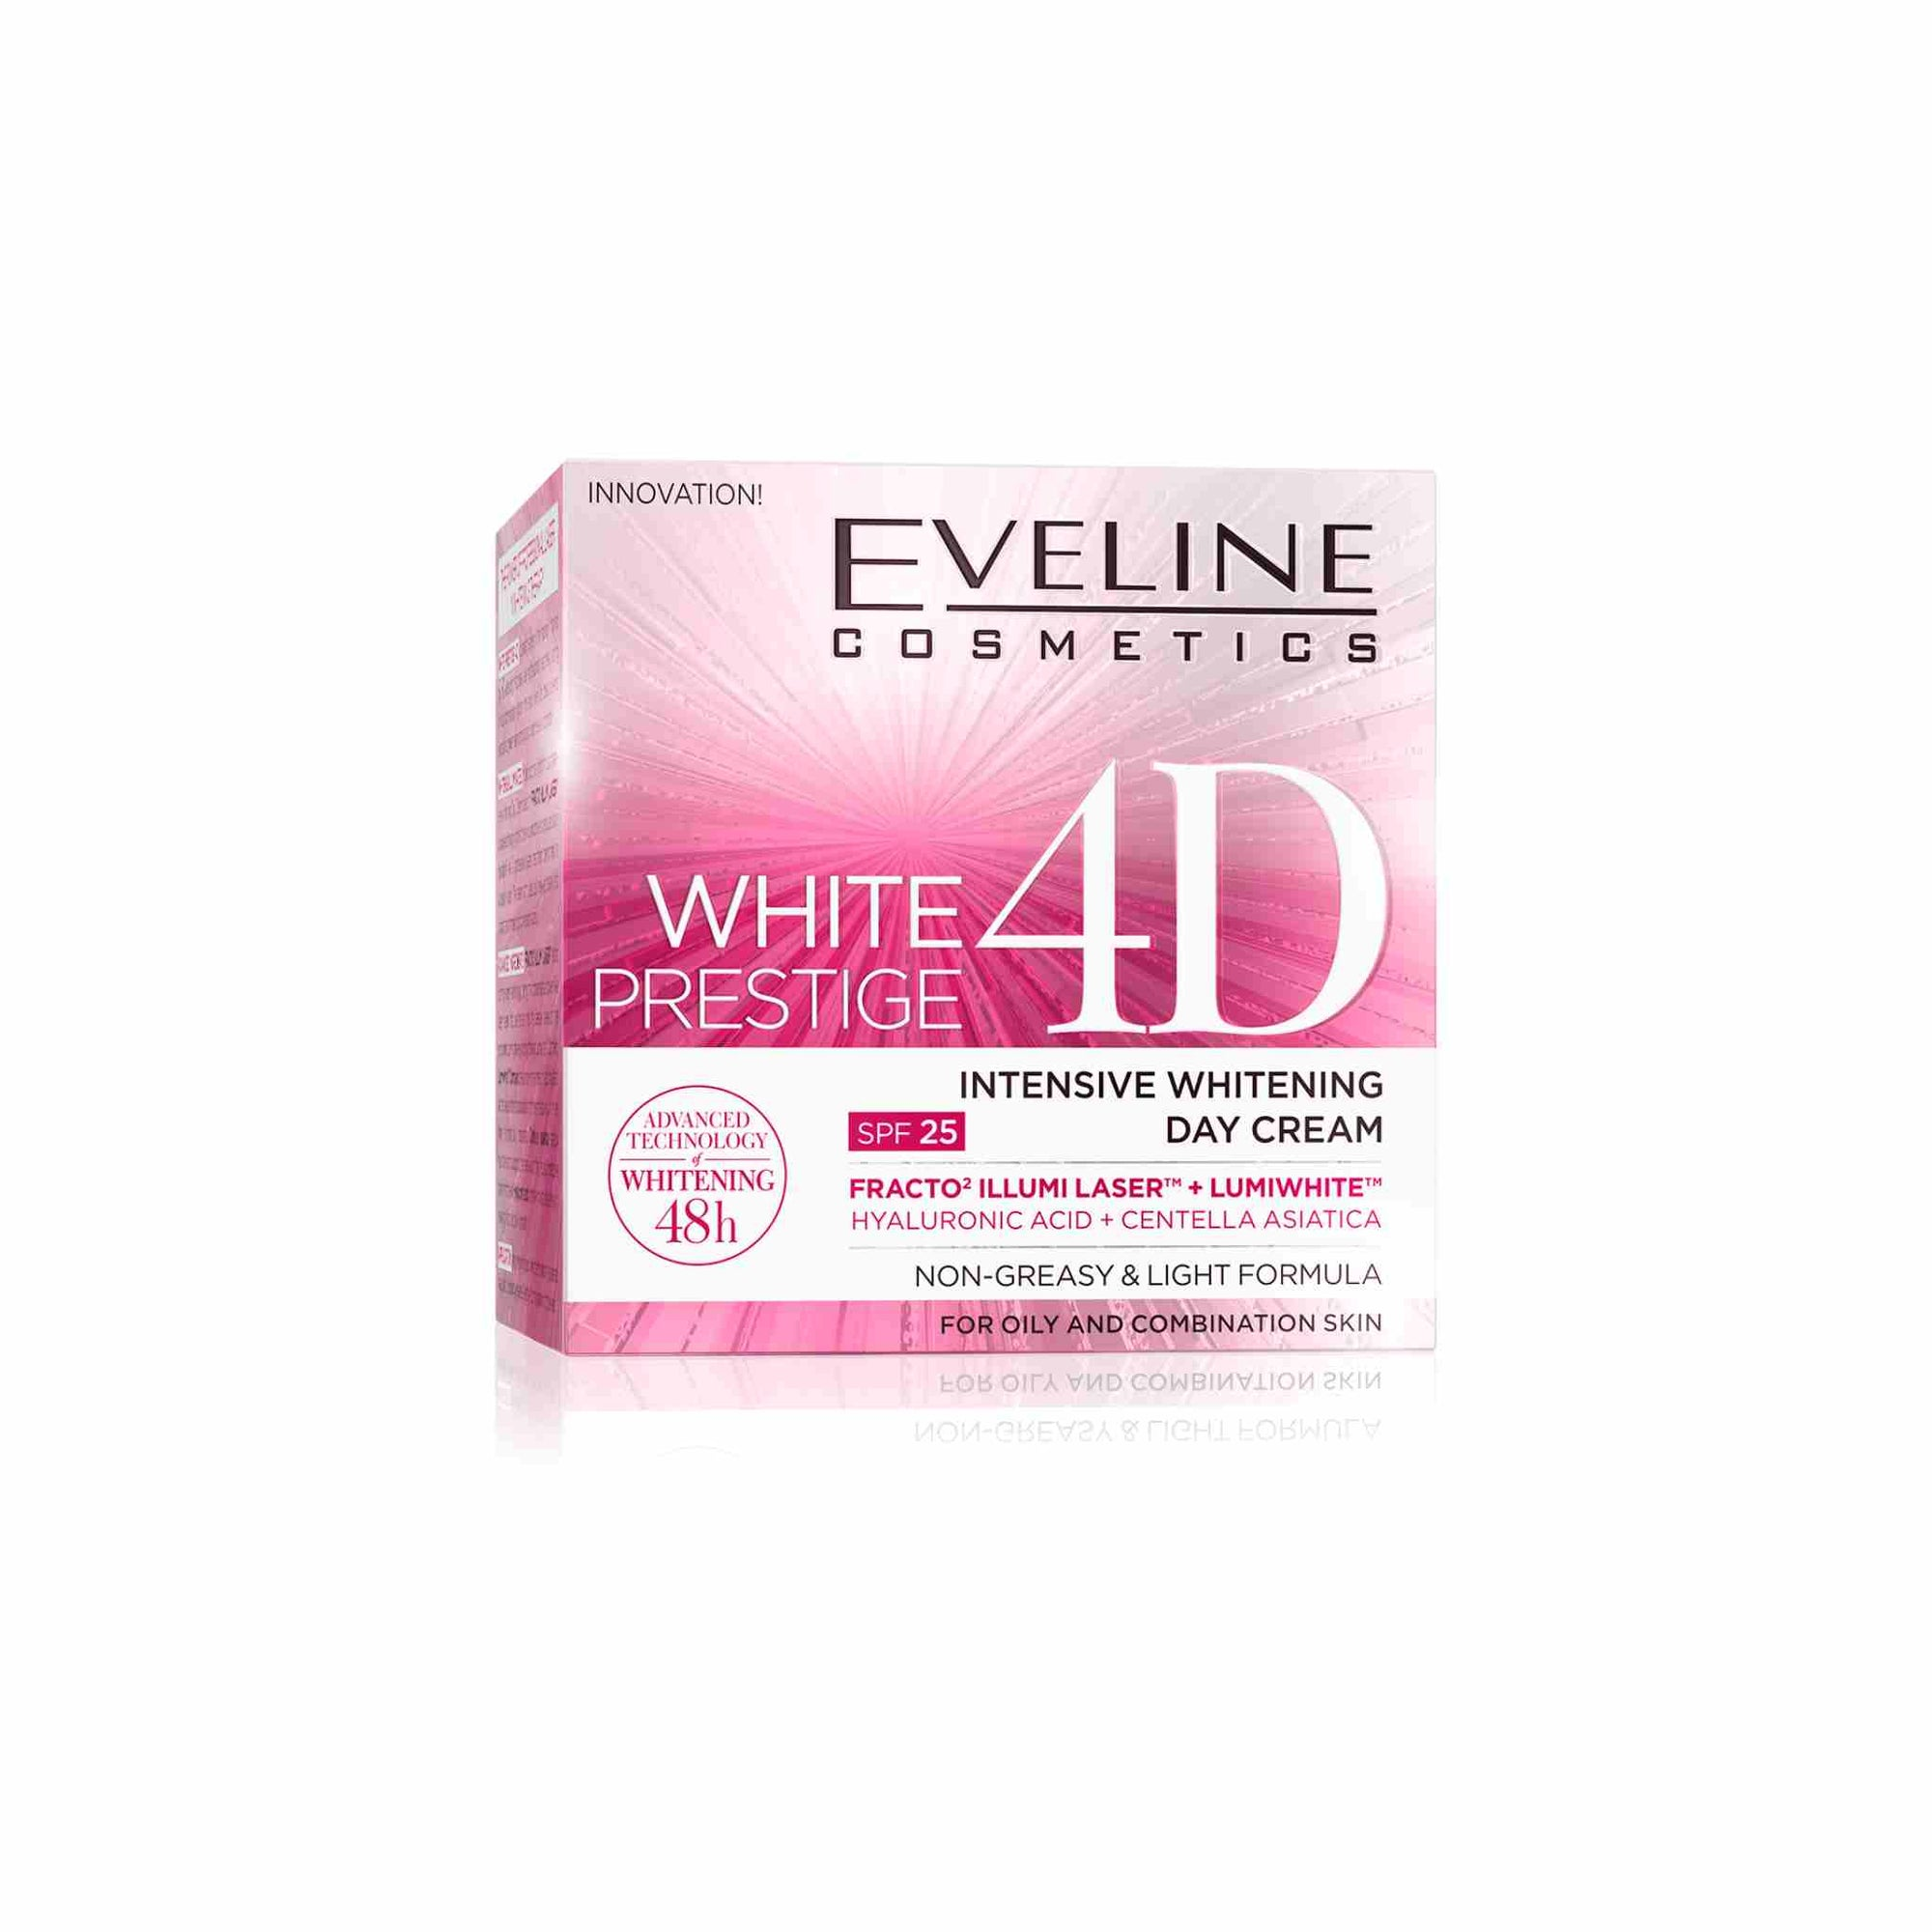 White Prestige 4D Whitening Day Cream